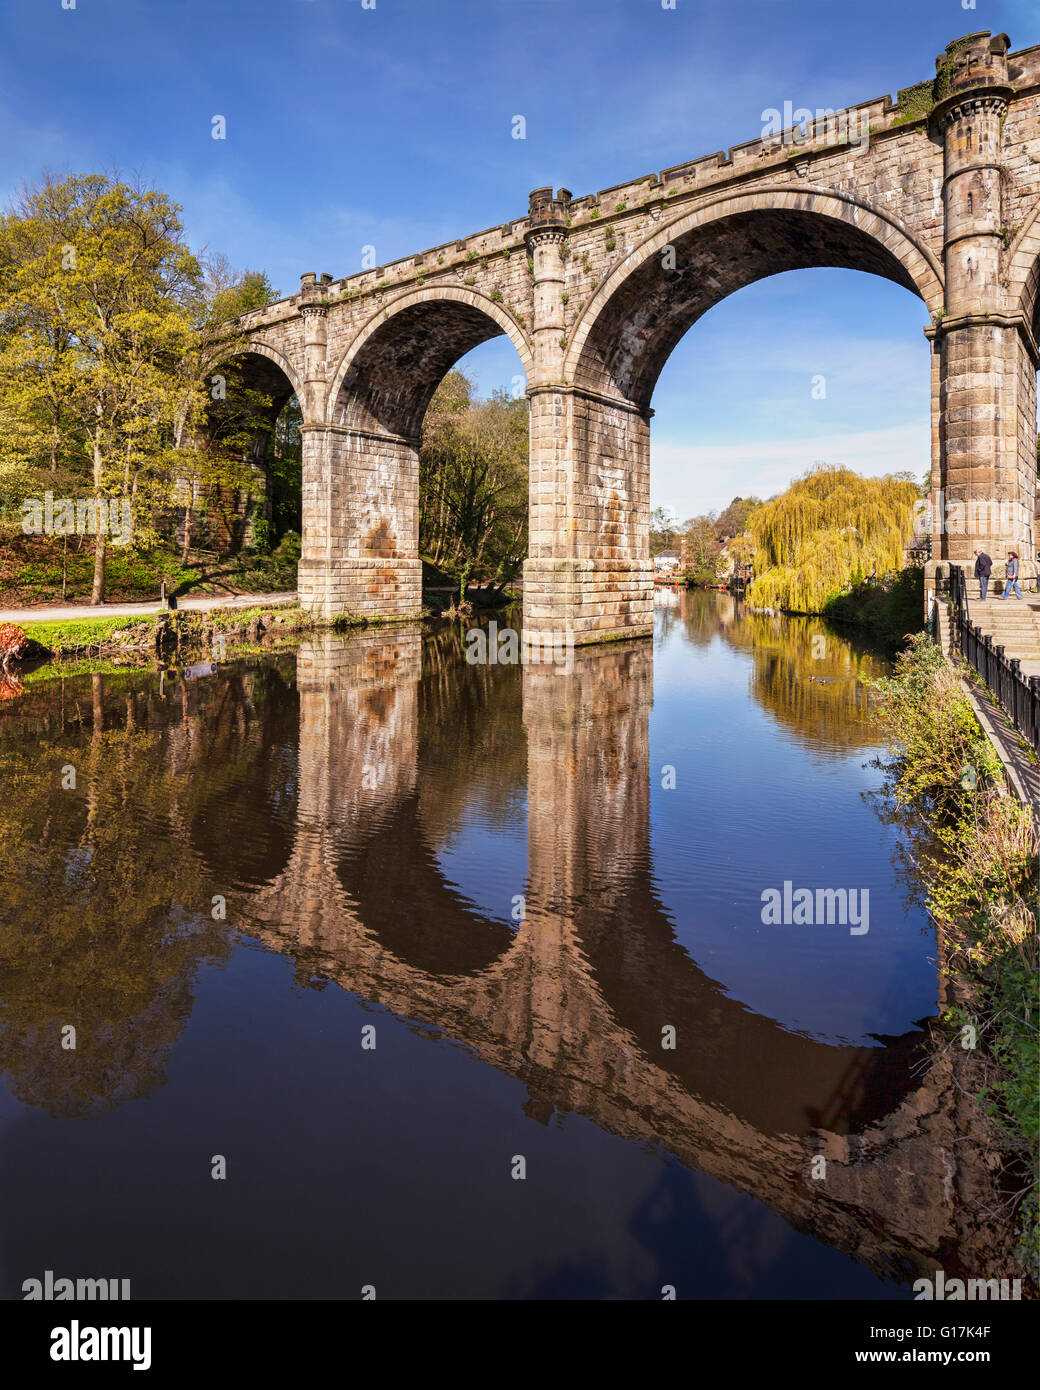 Knareborough Viaduct and the River Nidd, Knaresborough, North Yorkshire, England, UK - Stock Image